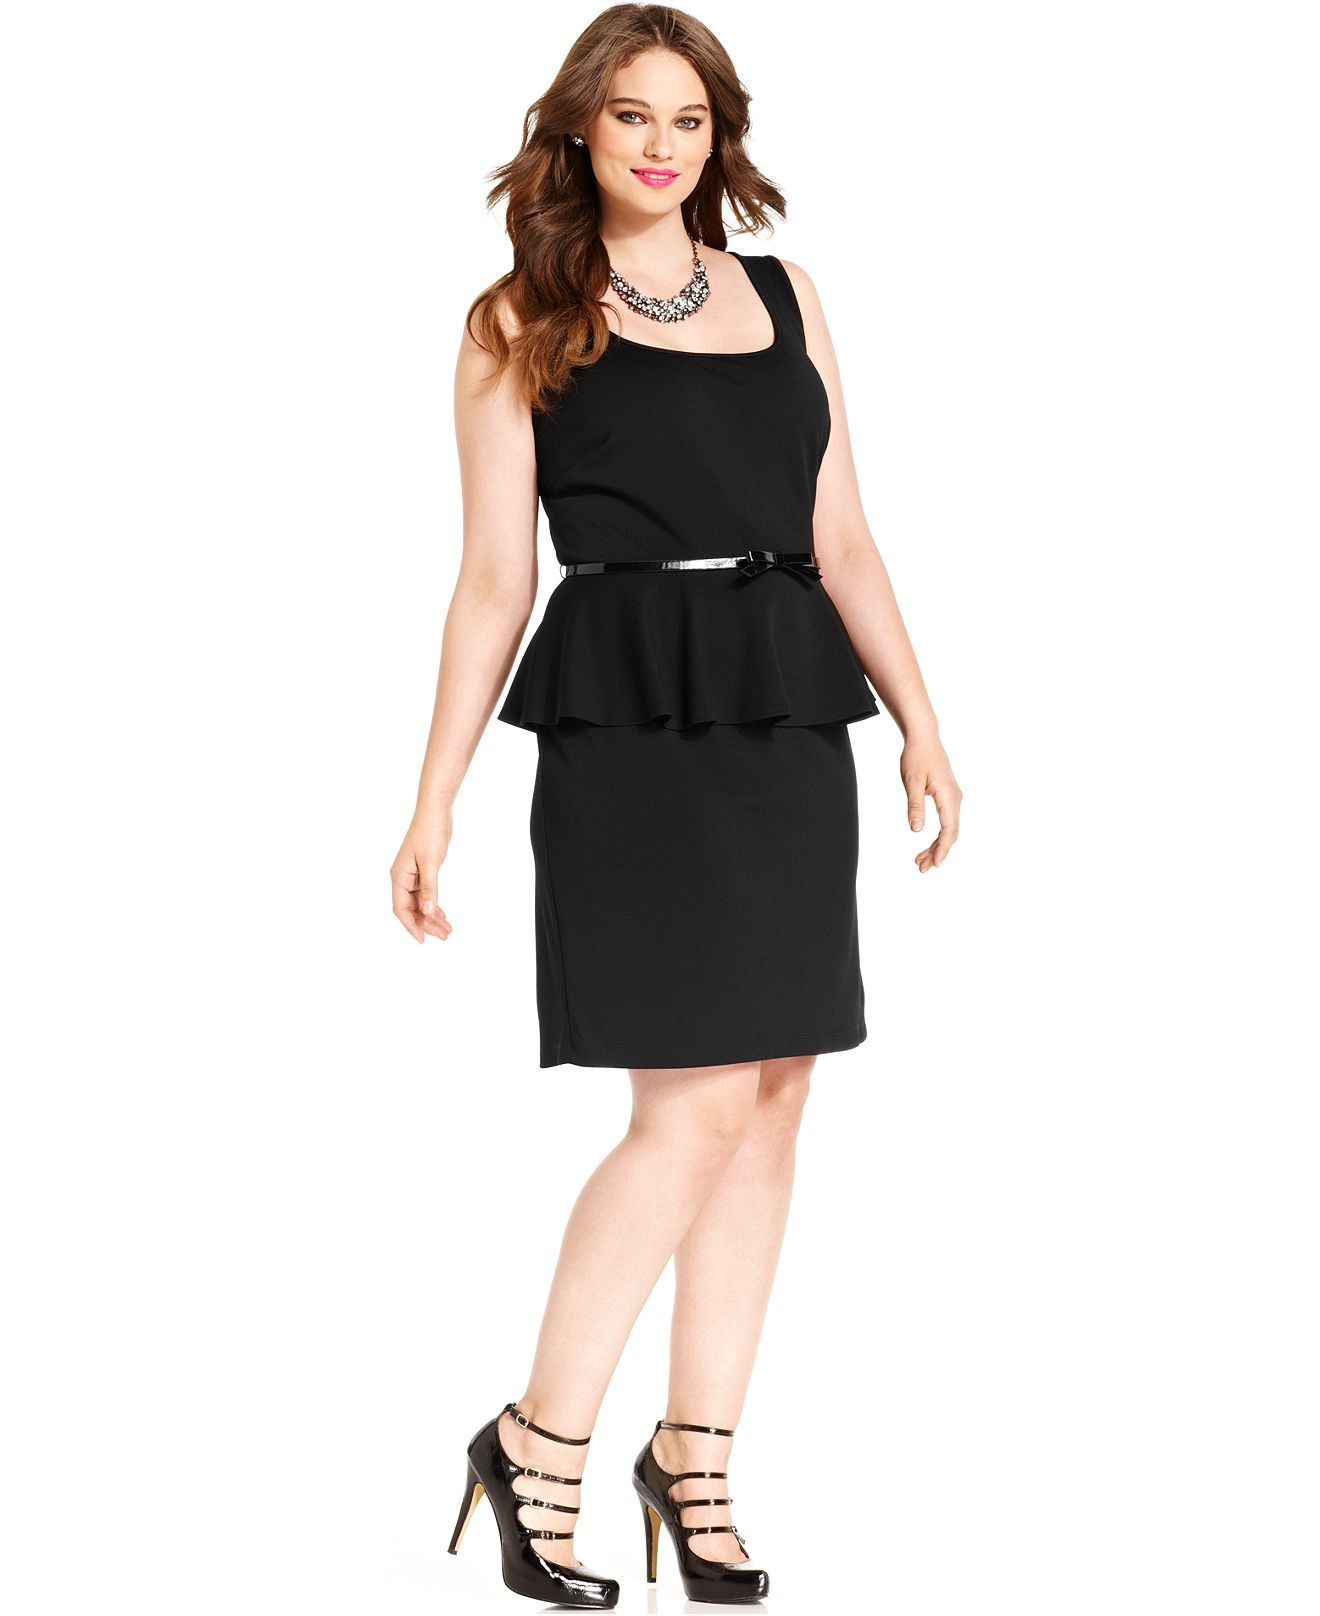 Plus size dresses for a wedding  Love Squared Plus Size Dress Sleeveless Peplum LaceBowBack  Plus